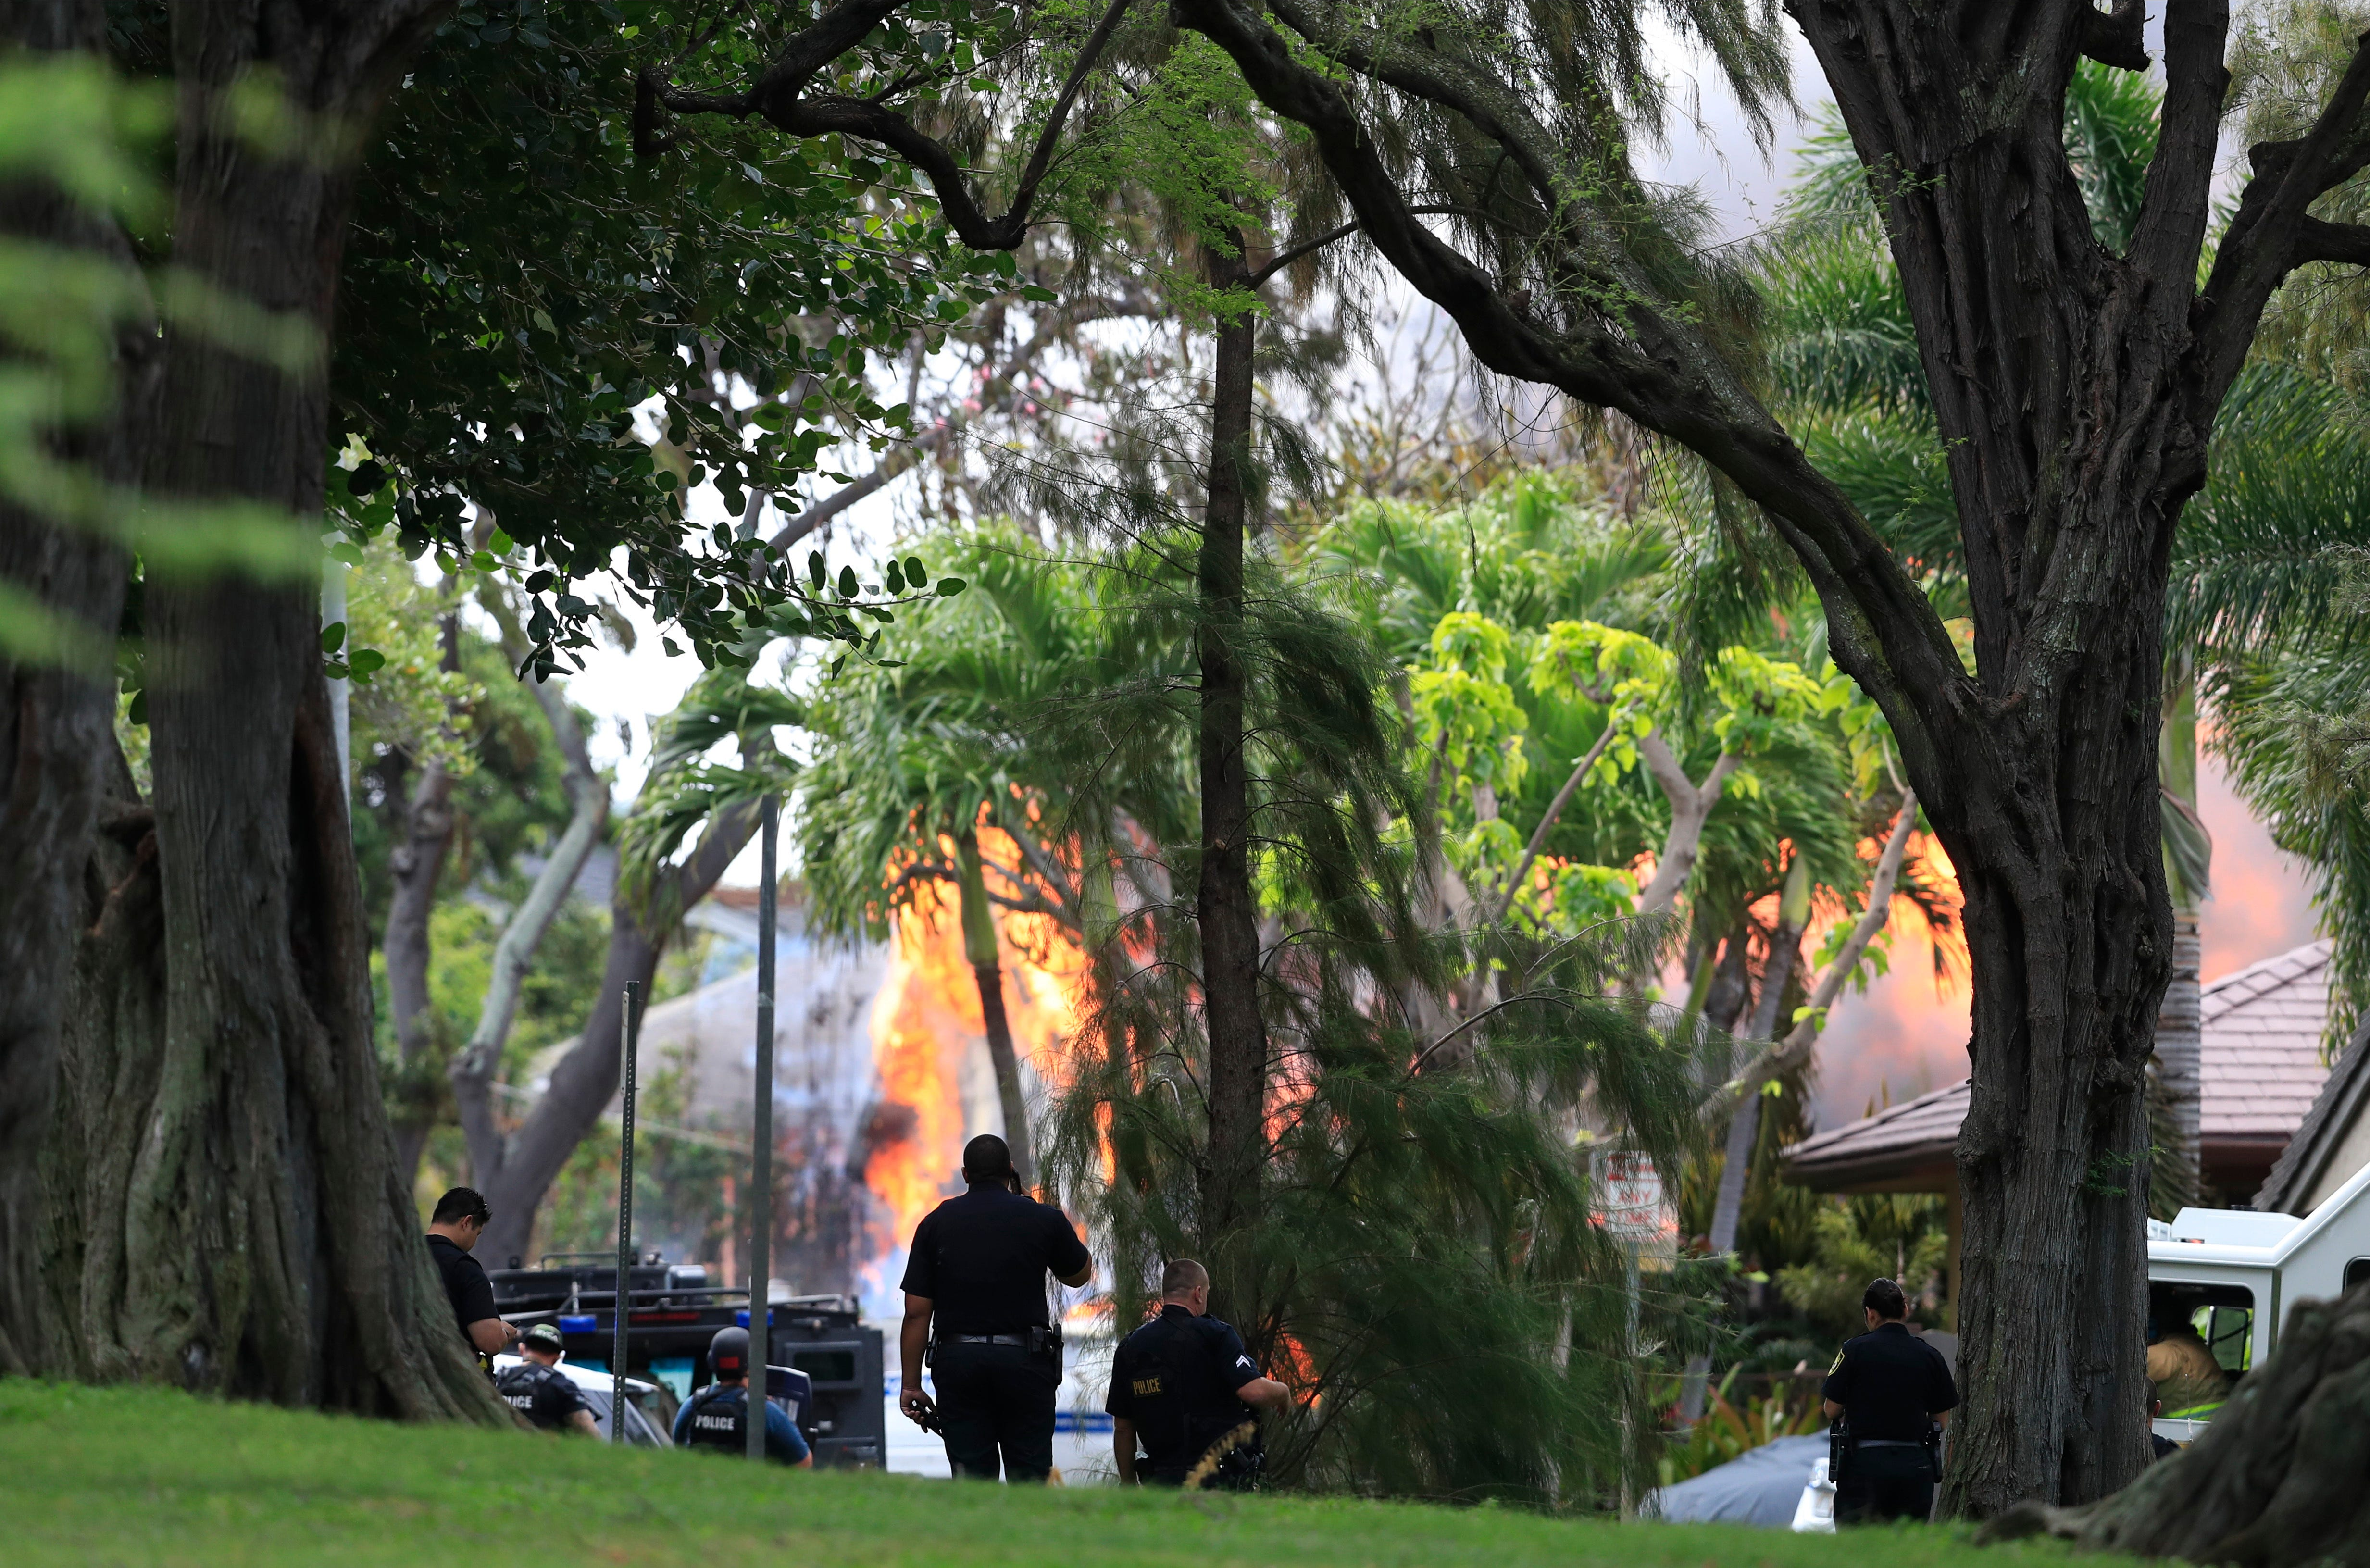 Unprecedented tragedy : Gunman kills 2 Hawaii officers, sets fire that destroys at least 7 homes, police say